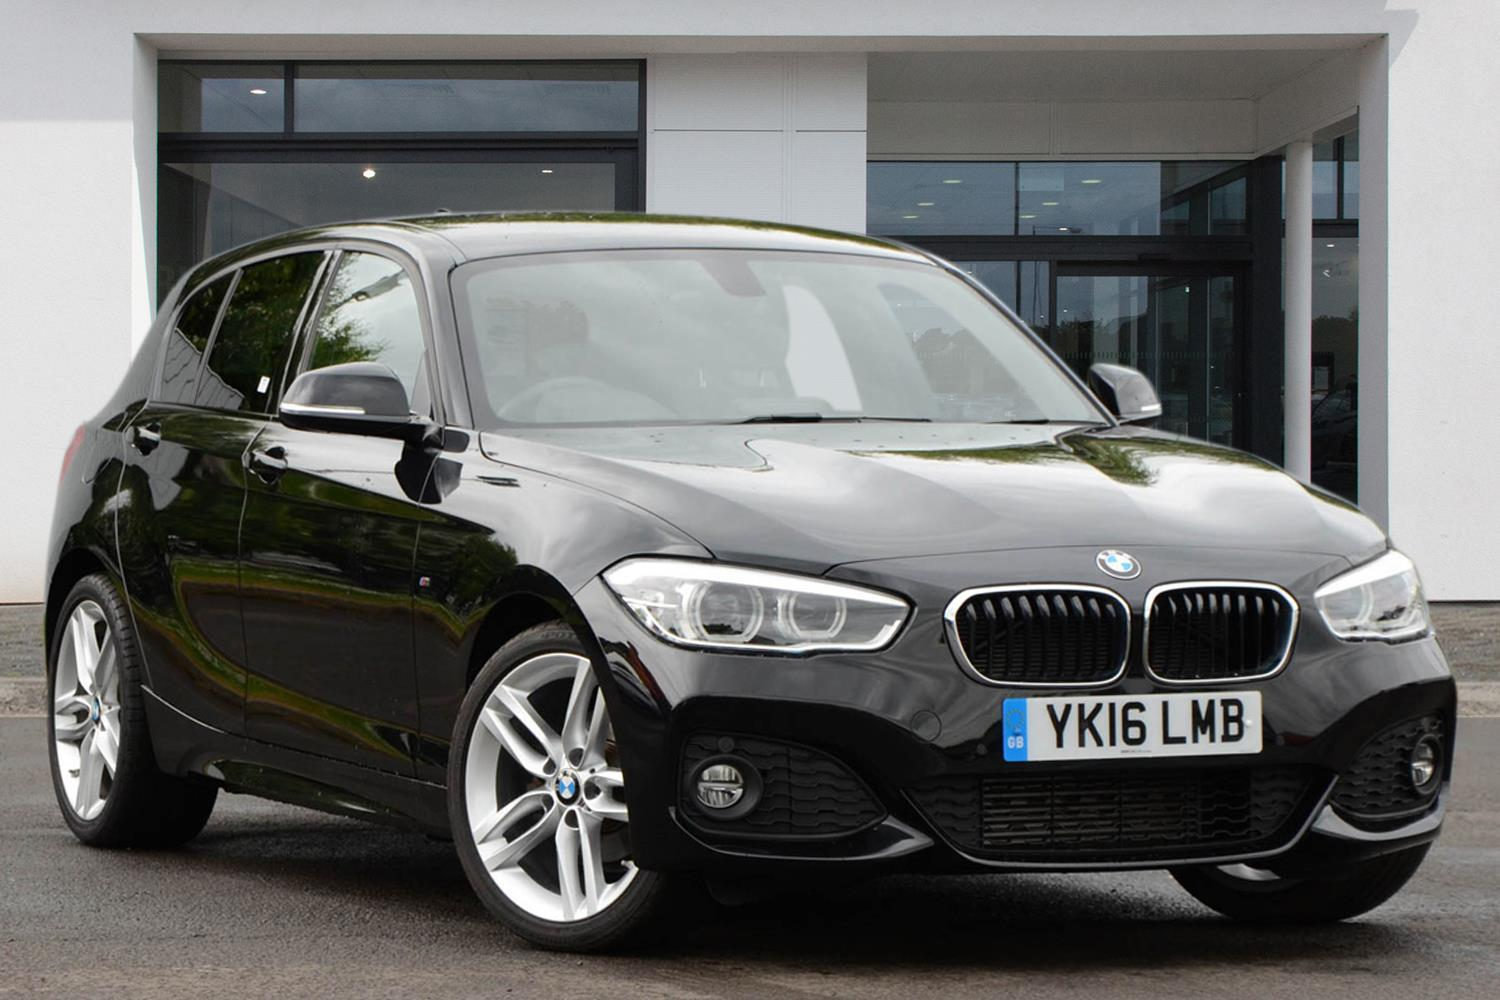 BMW 1 Series 5-door Sports Hatch YK16LMB - Image 8